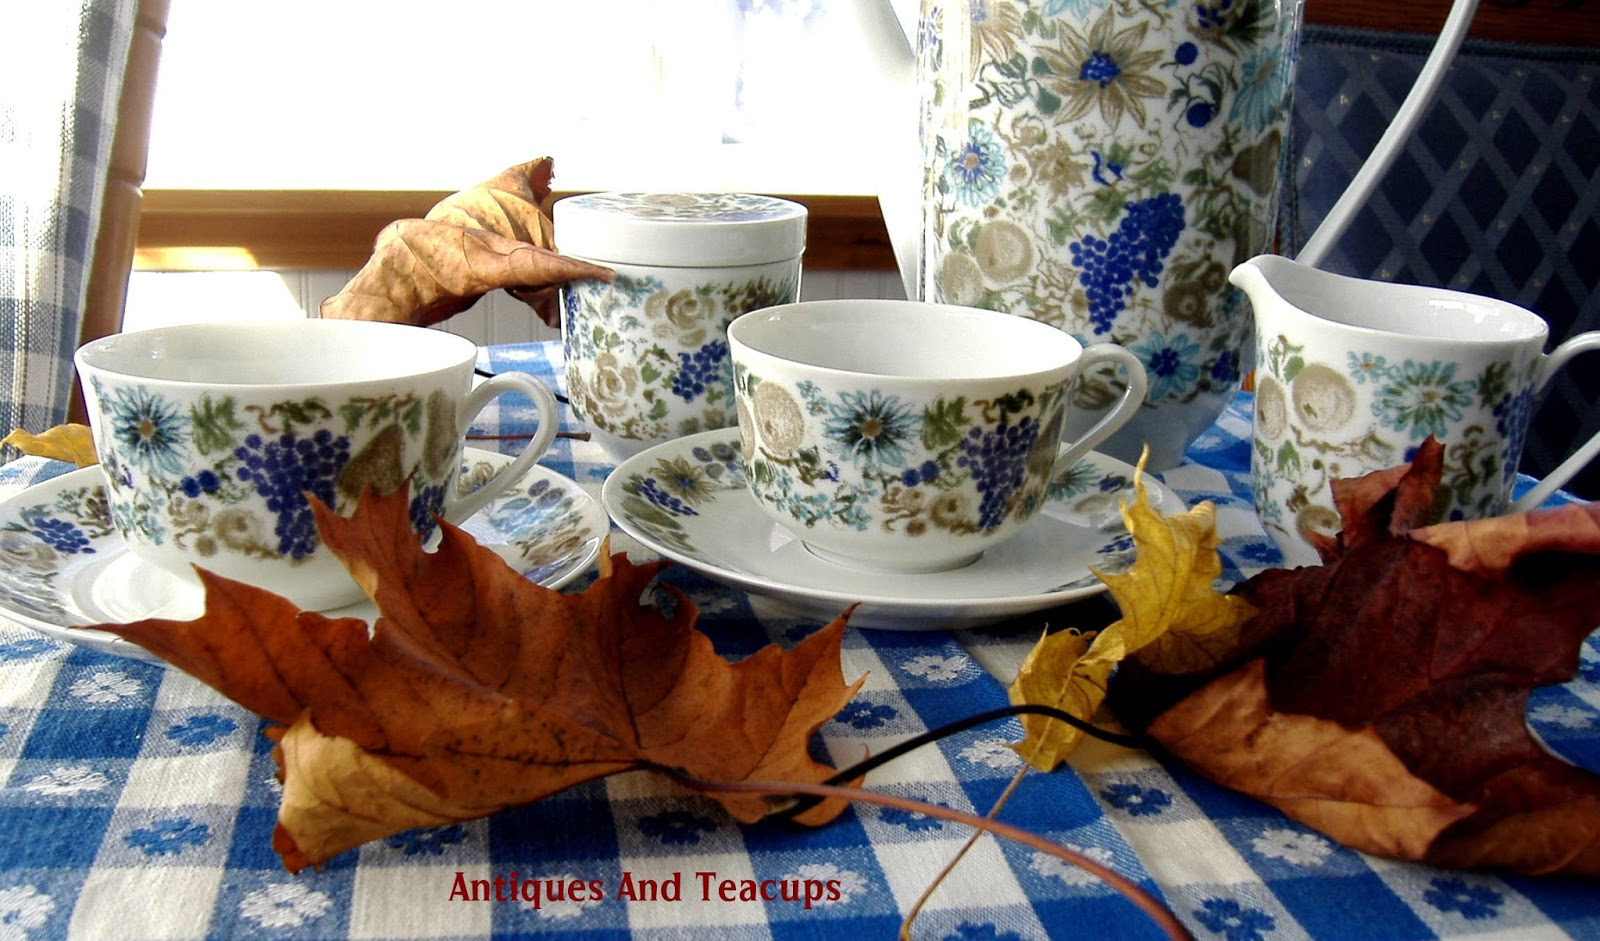 Antiques And Teacups: Tuesday Cuppa Tea, Welcome November ...